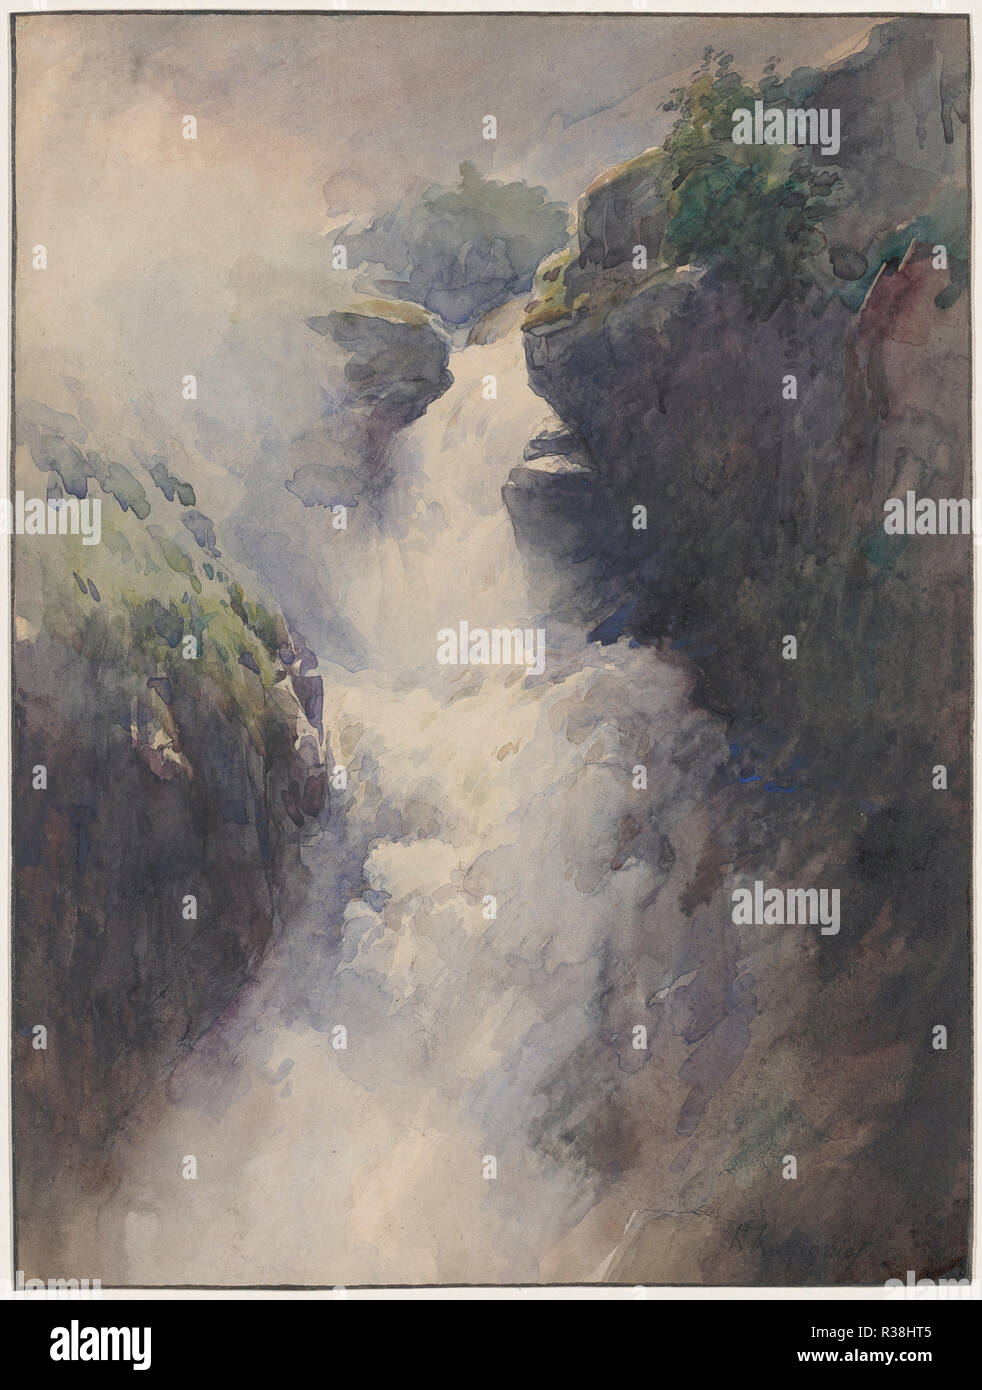 A Cascade in the Mountains. Dated: 1870s. Dimensions: sheet: 31.8 × 23.7 cm (12 1/2 × 9 5/16 in.). Medium: watercolor over pen and black ink on wove paper. Museum: National Gallery of Art, Washington DC. Author: Henri-Joseph Harpignies. - Stock Image